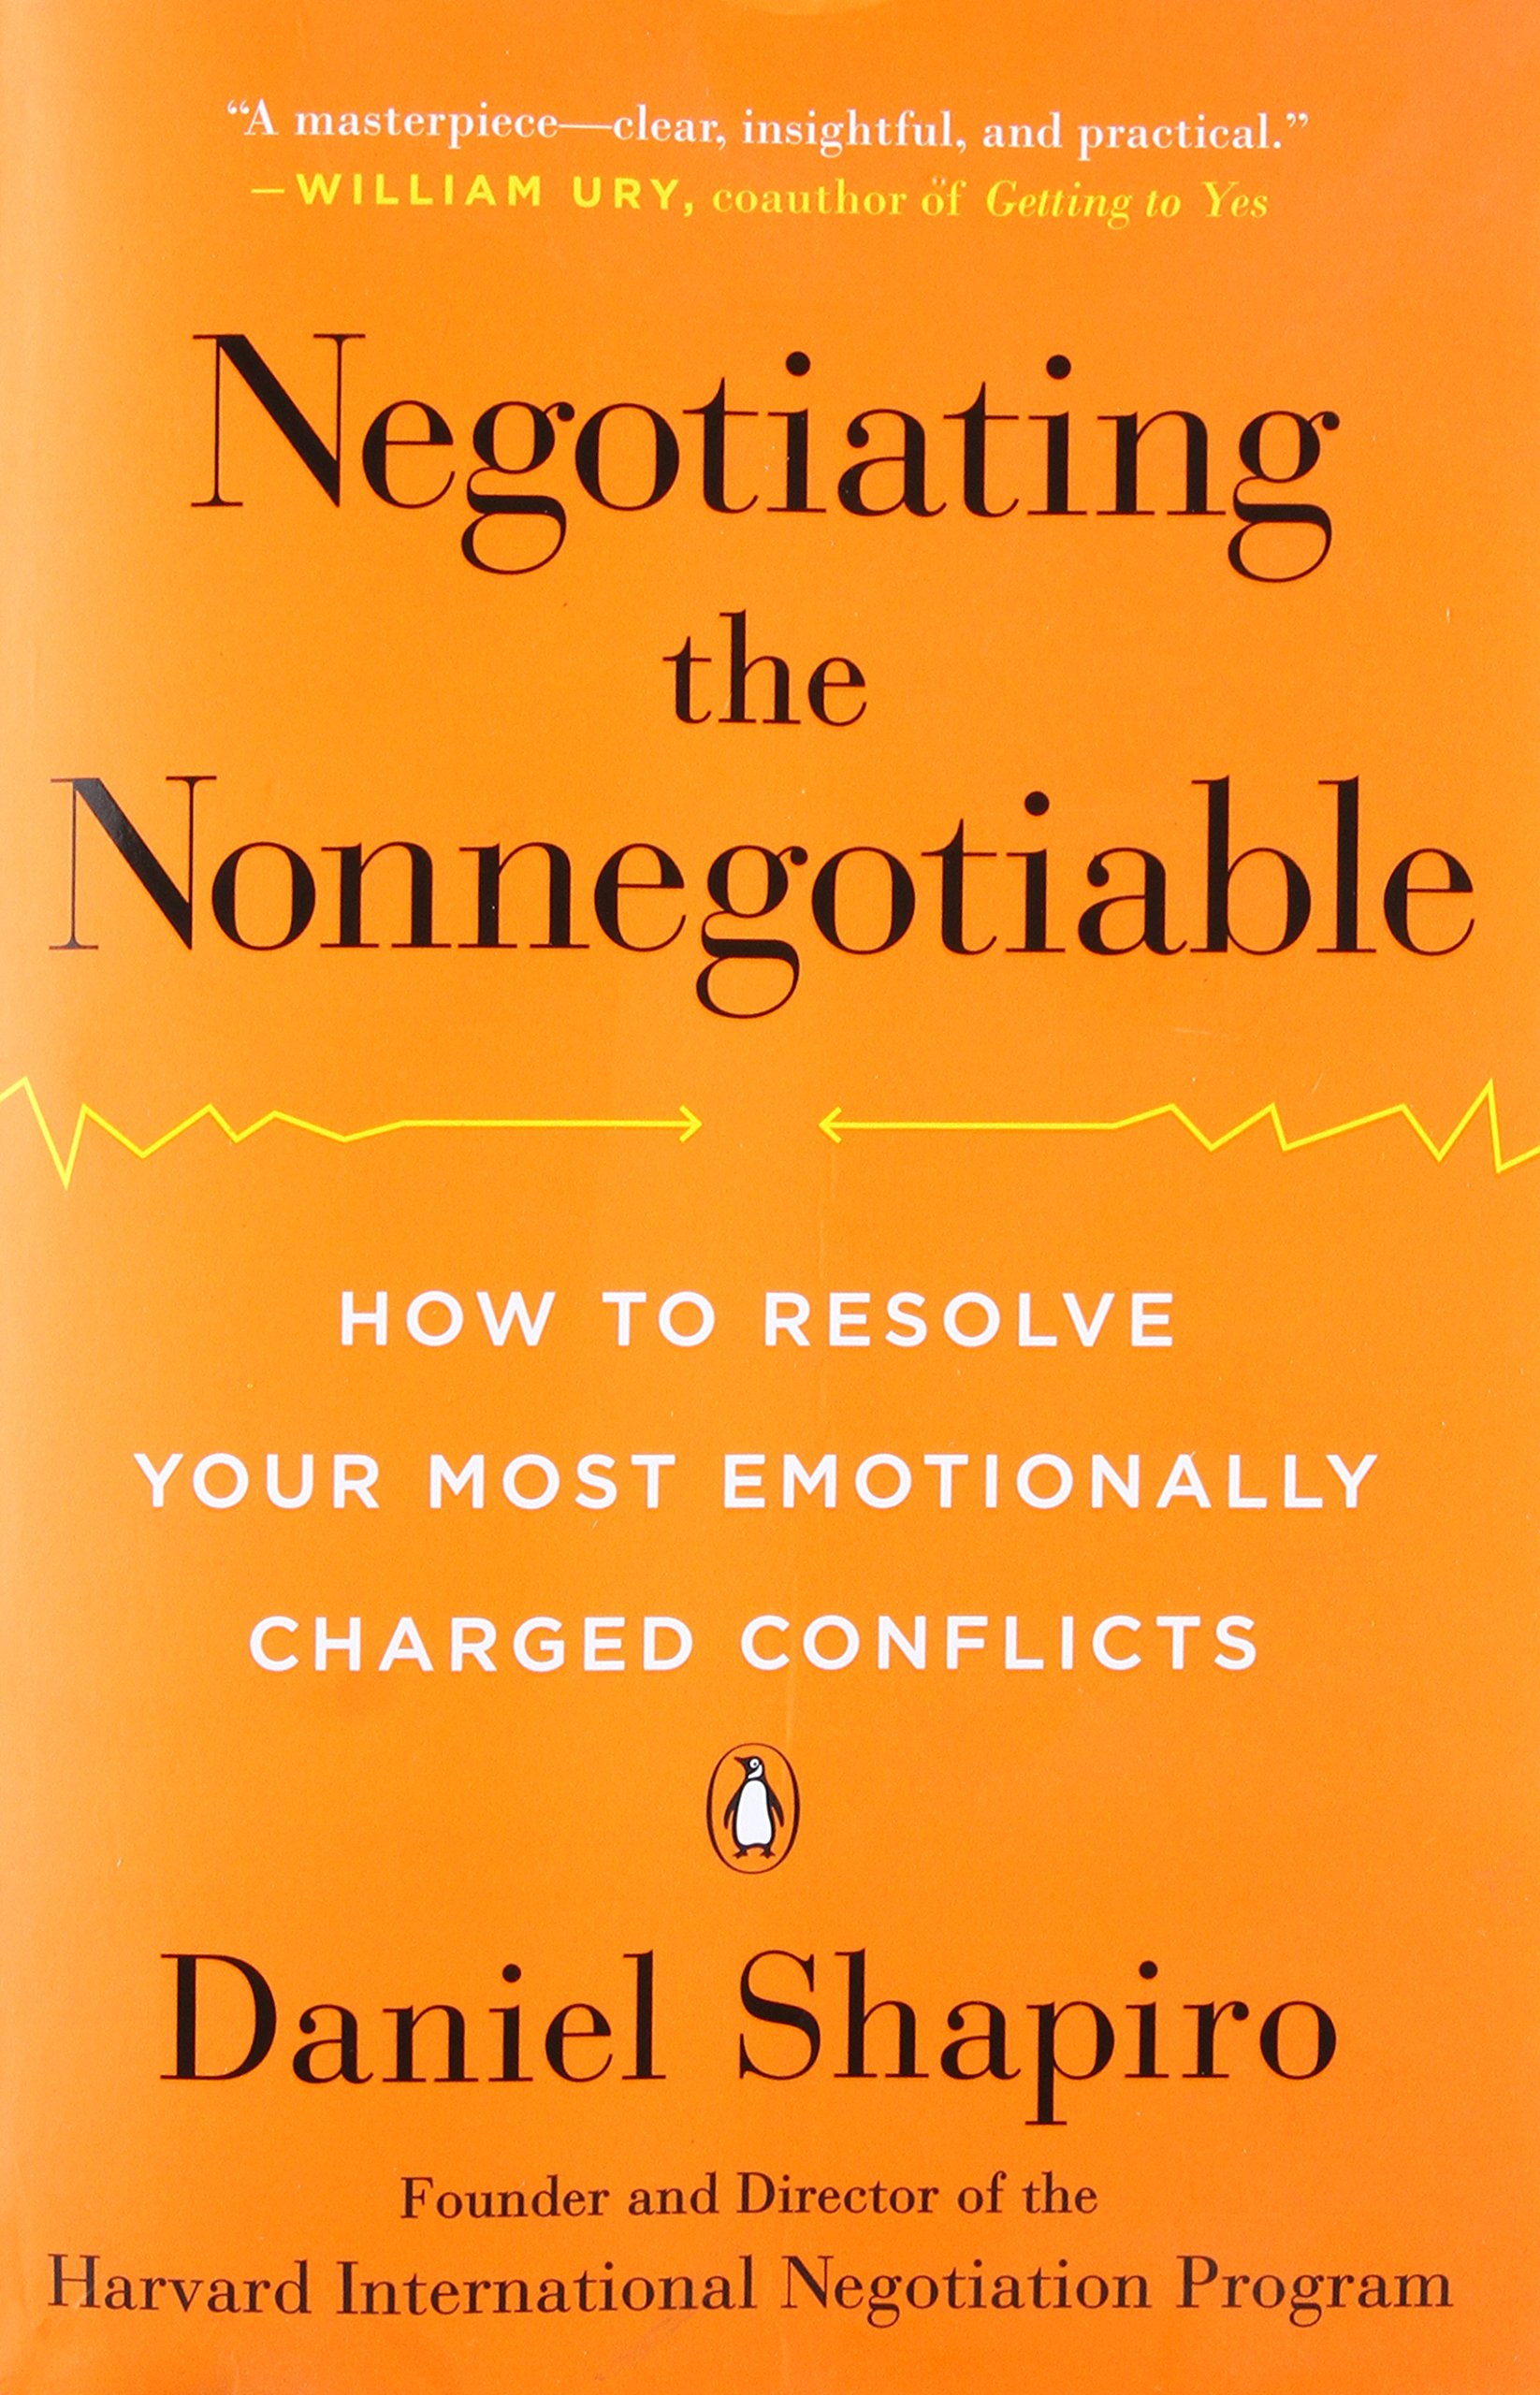 Negotiating the nonnegotiable how to resolve your most negotiating the nonnegotiable how to resolve your most emotionally charged conflicts daniel shapiro 9780143110170 amazon books xflitez Choice Image